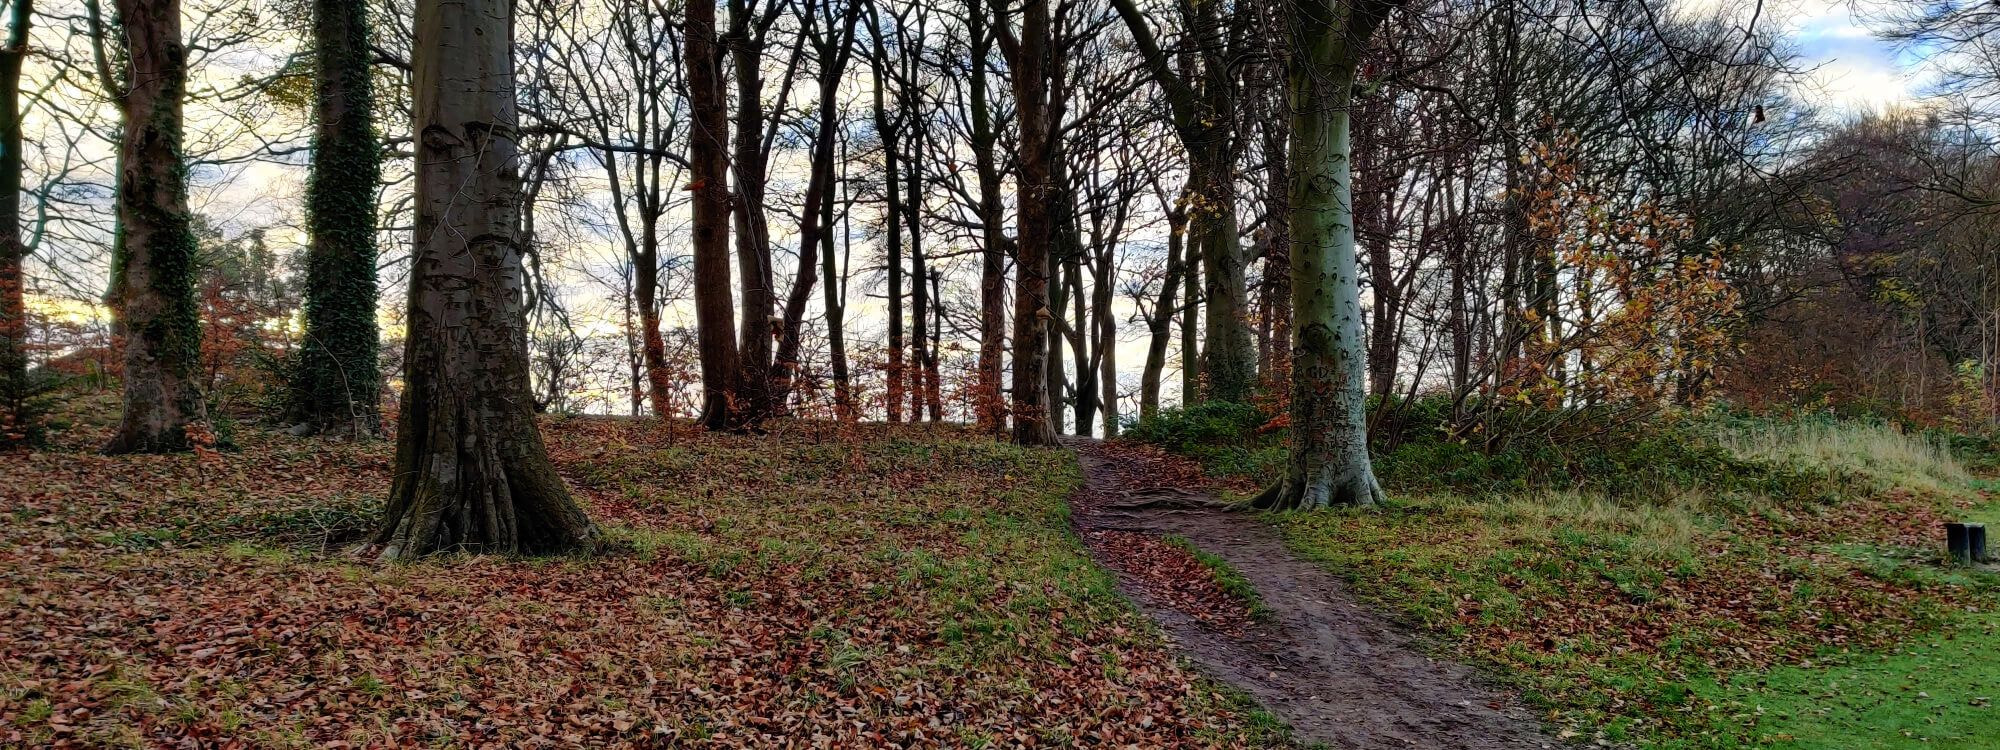 Batcliffe Woods in the morning